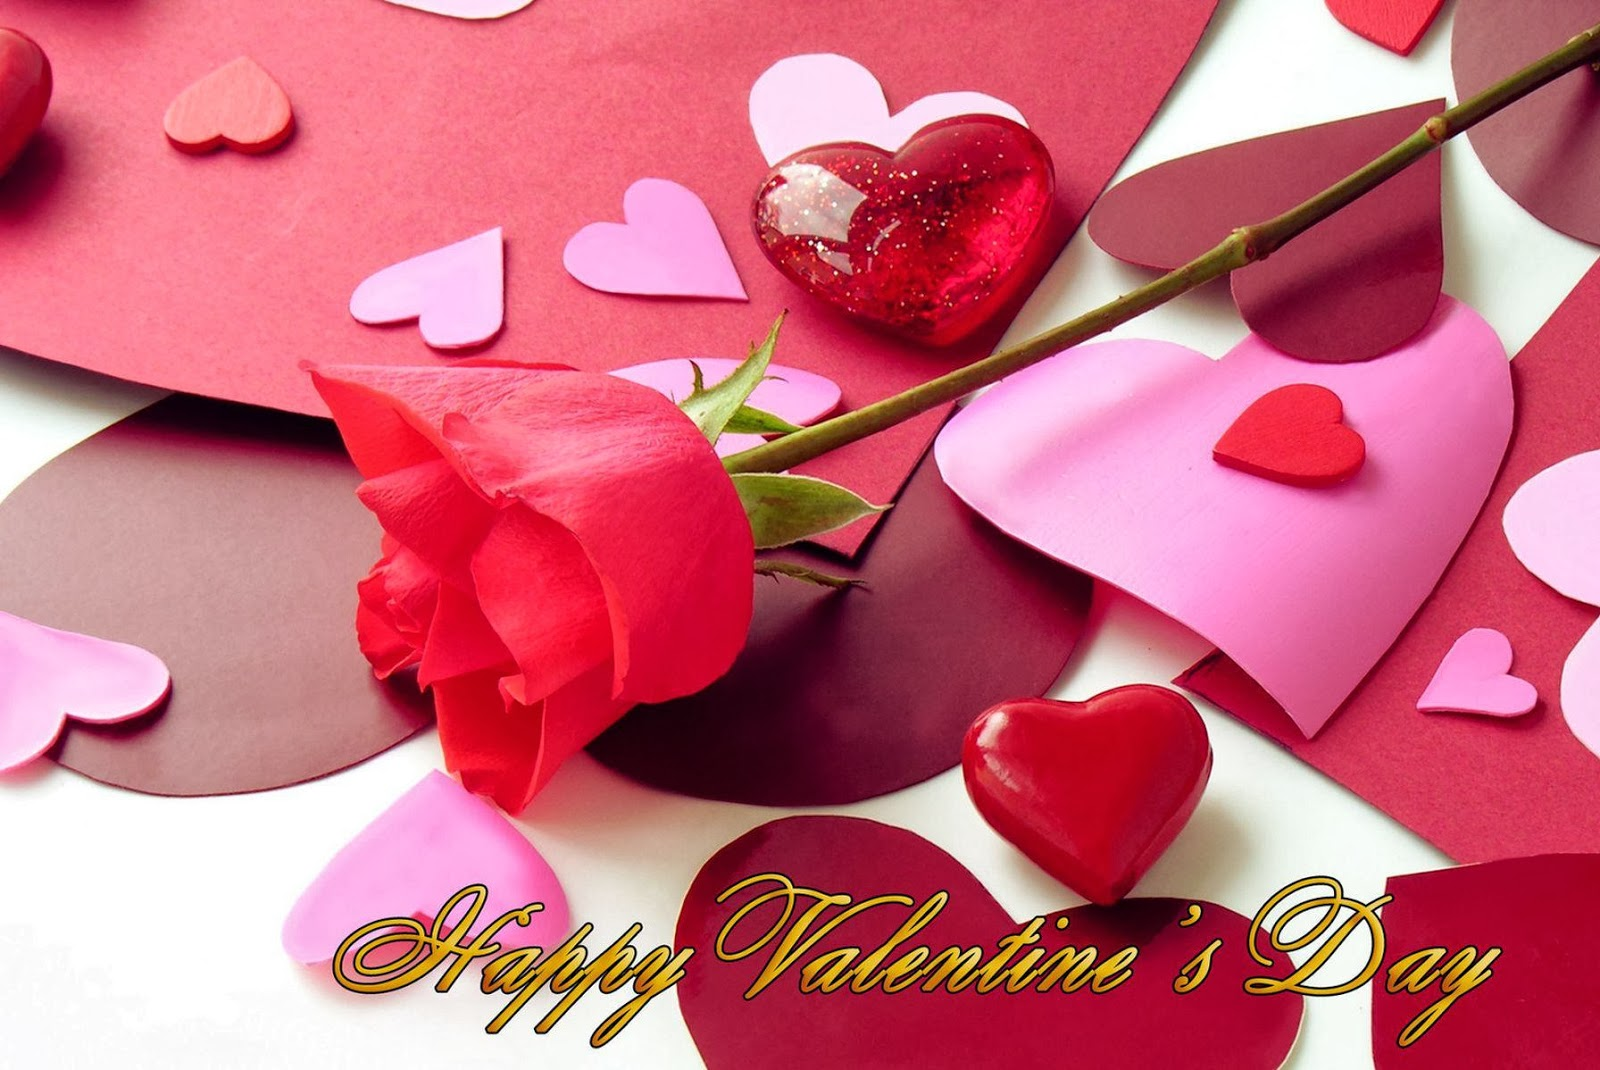 new latest happy valentine's day 2014 wallpapers ~ free hd desktop